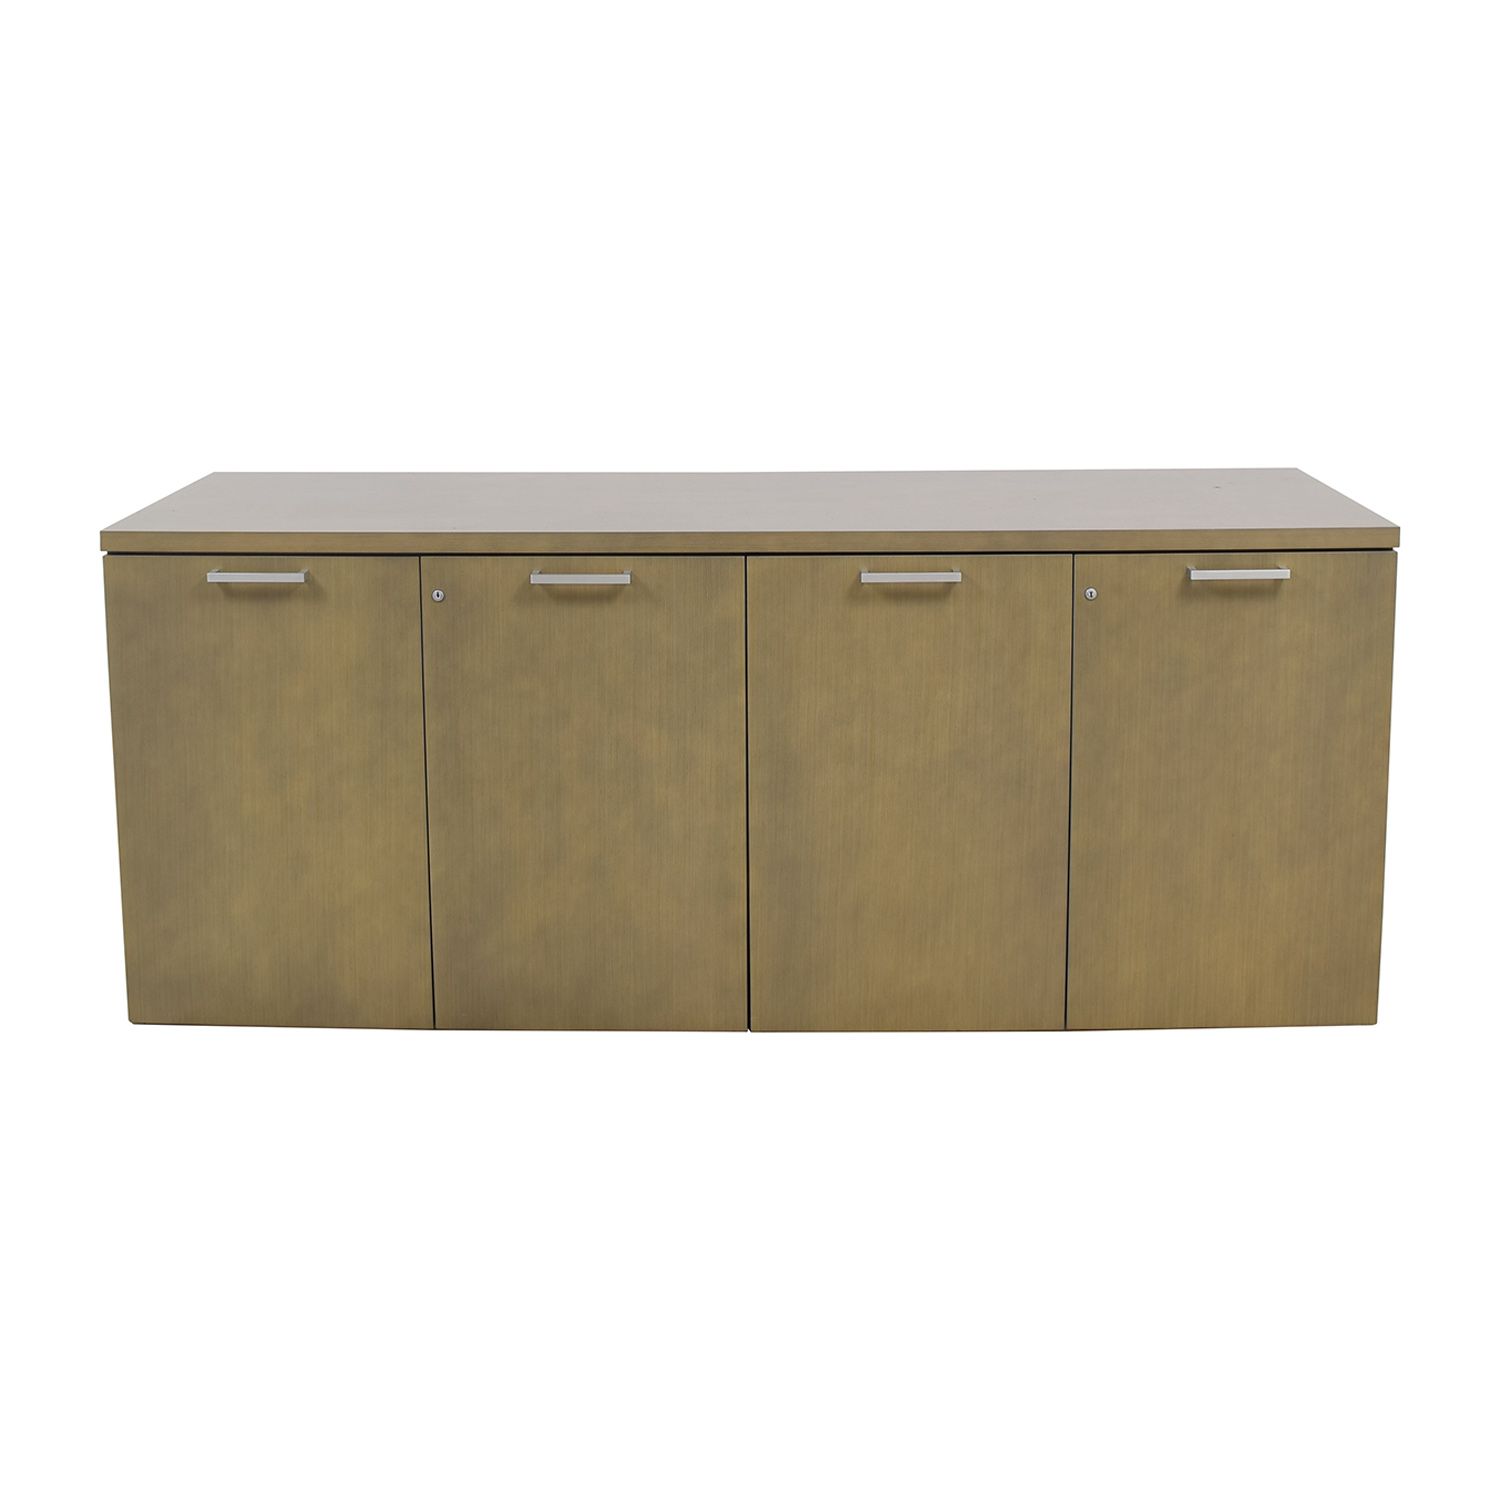 Office Furniture Heaven Office Furniture Heaven Storage Credenza ct